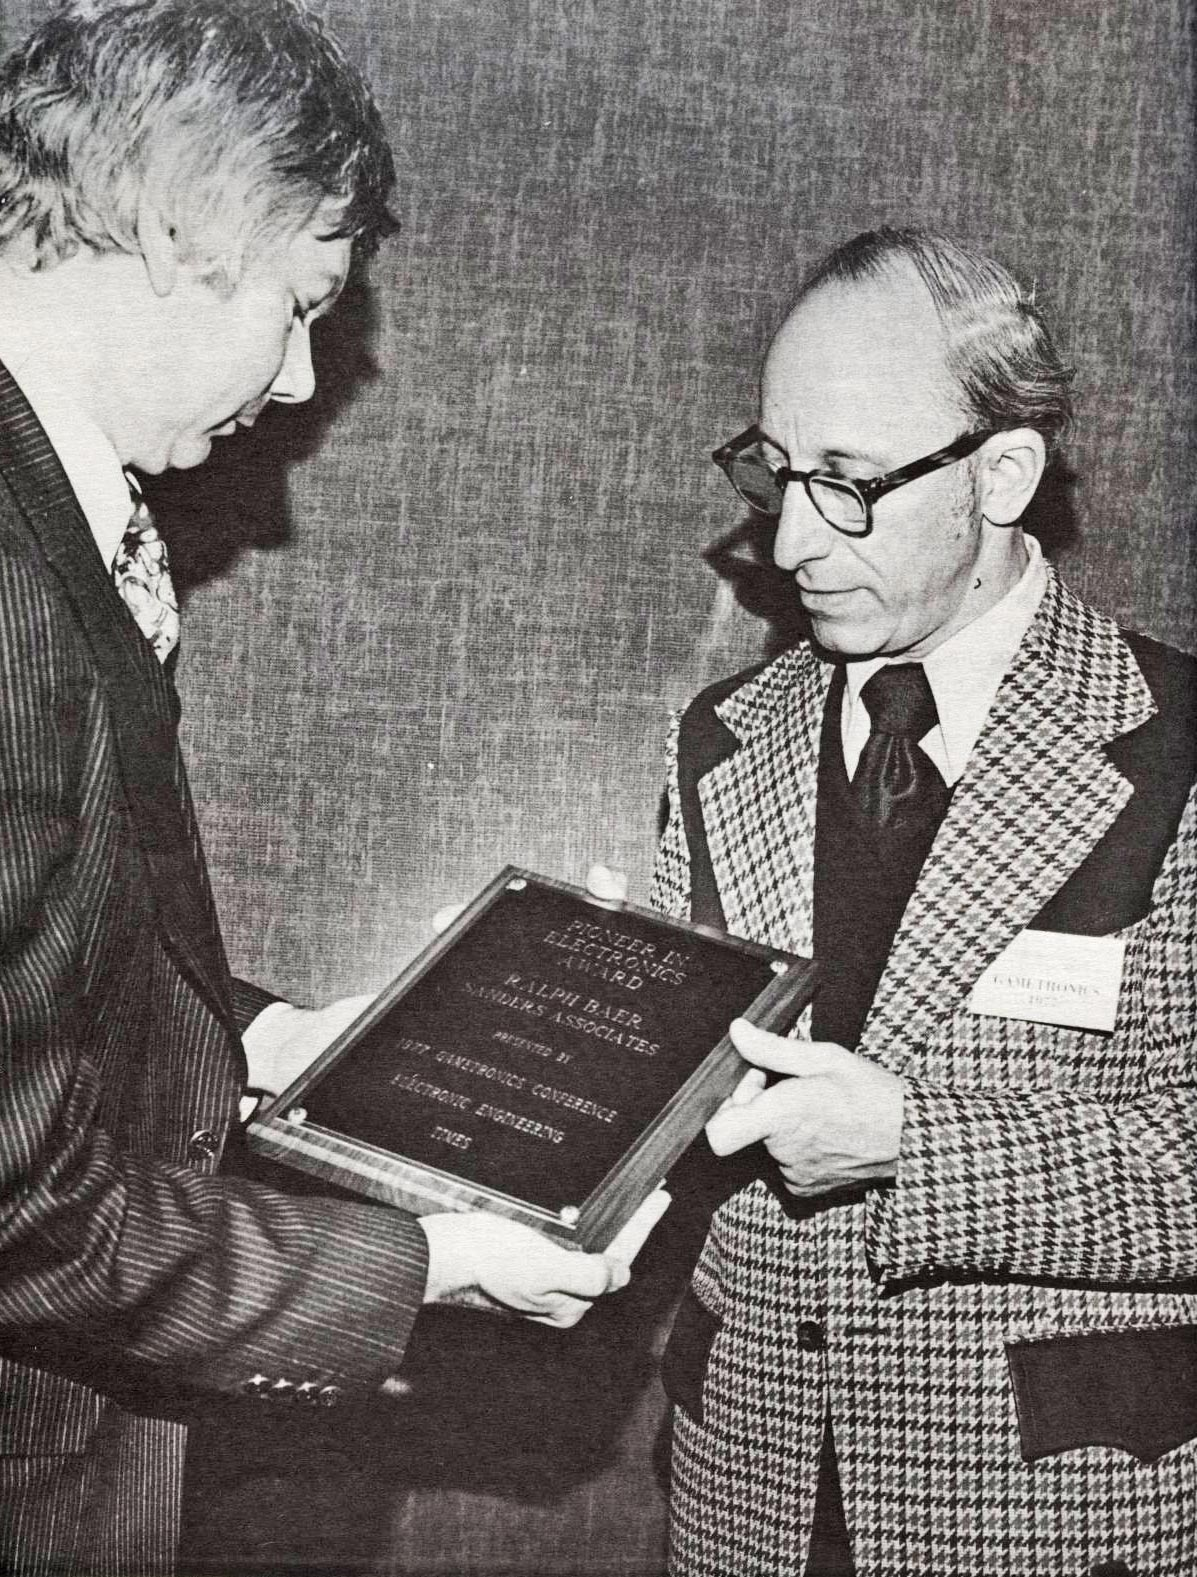 Ralph Baer, inventor of the first home video game Odyssey, released by Magnavox